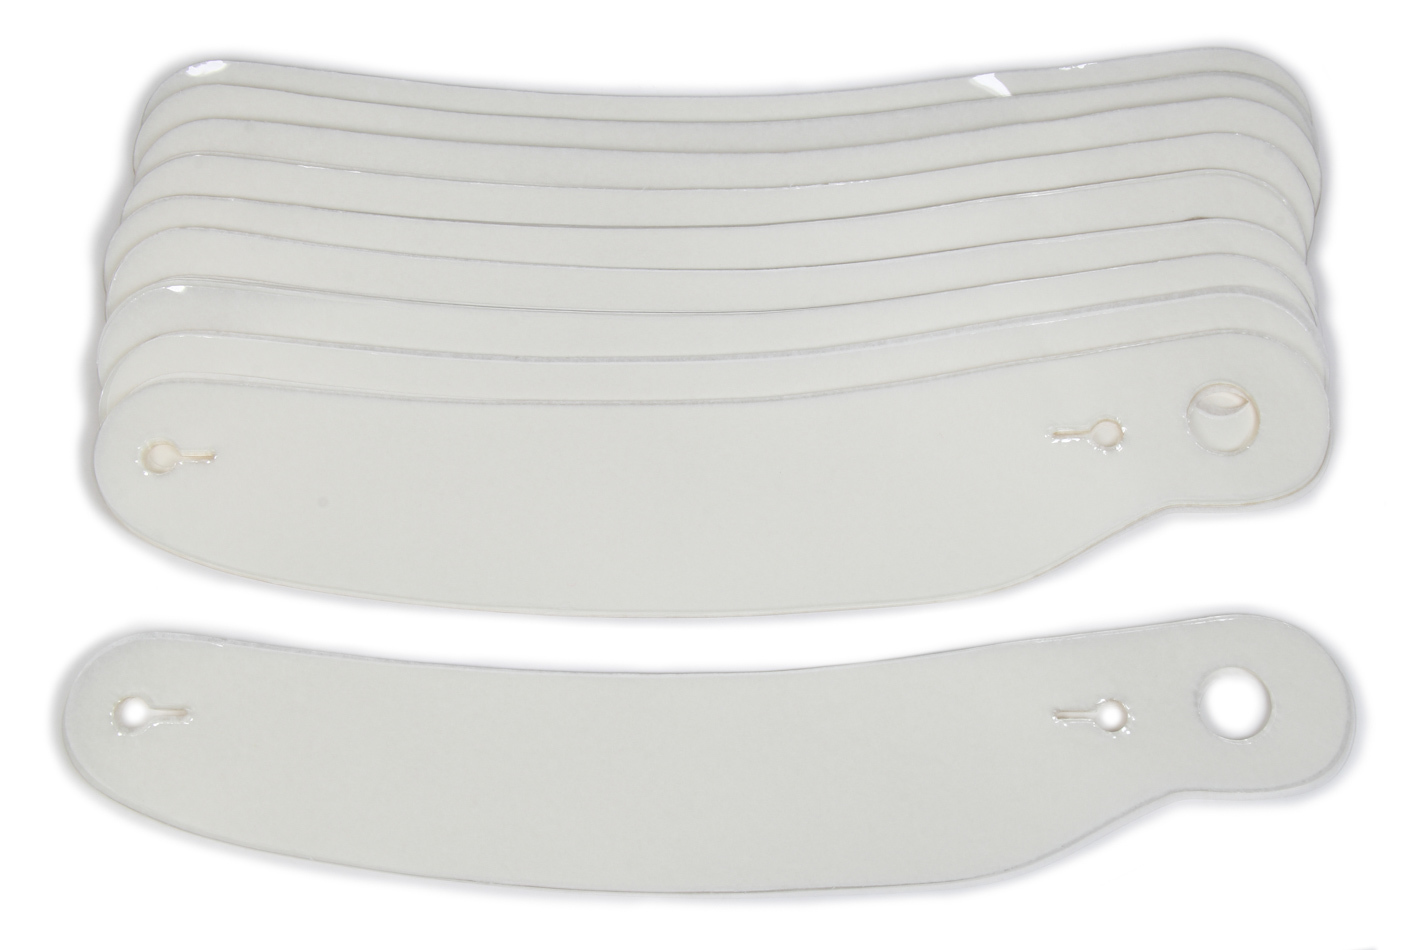 Ultra Shield 01202 Helmet Shield Tear Off, 2 mm Thick, 12-3/8 in Center to Center, Curved, Plastic, Clear, Bell/G-Force/Pyrotech Helmets, Set of 200